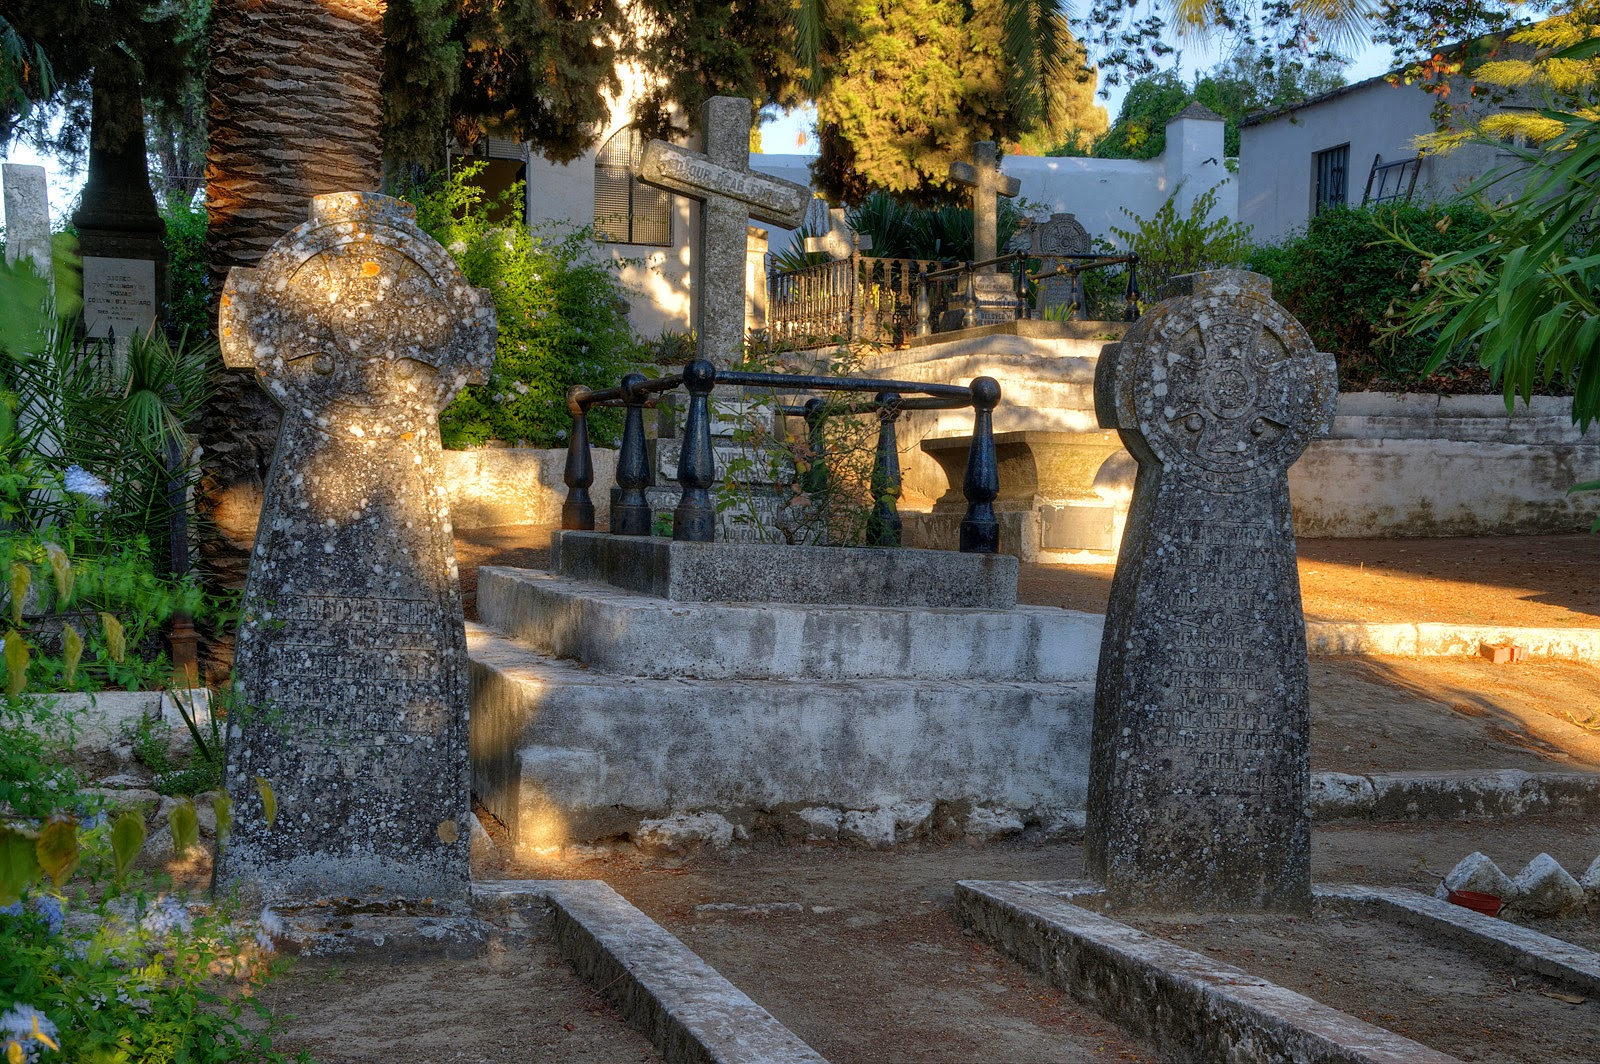 English Cemetery (Linares, Spain)